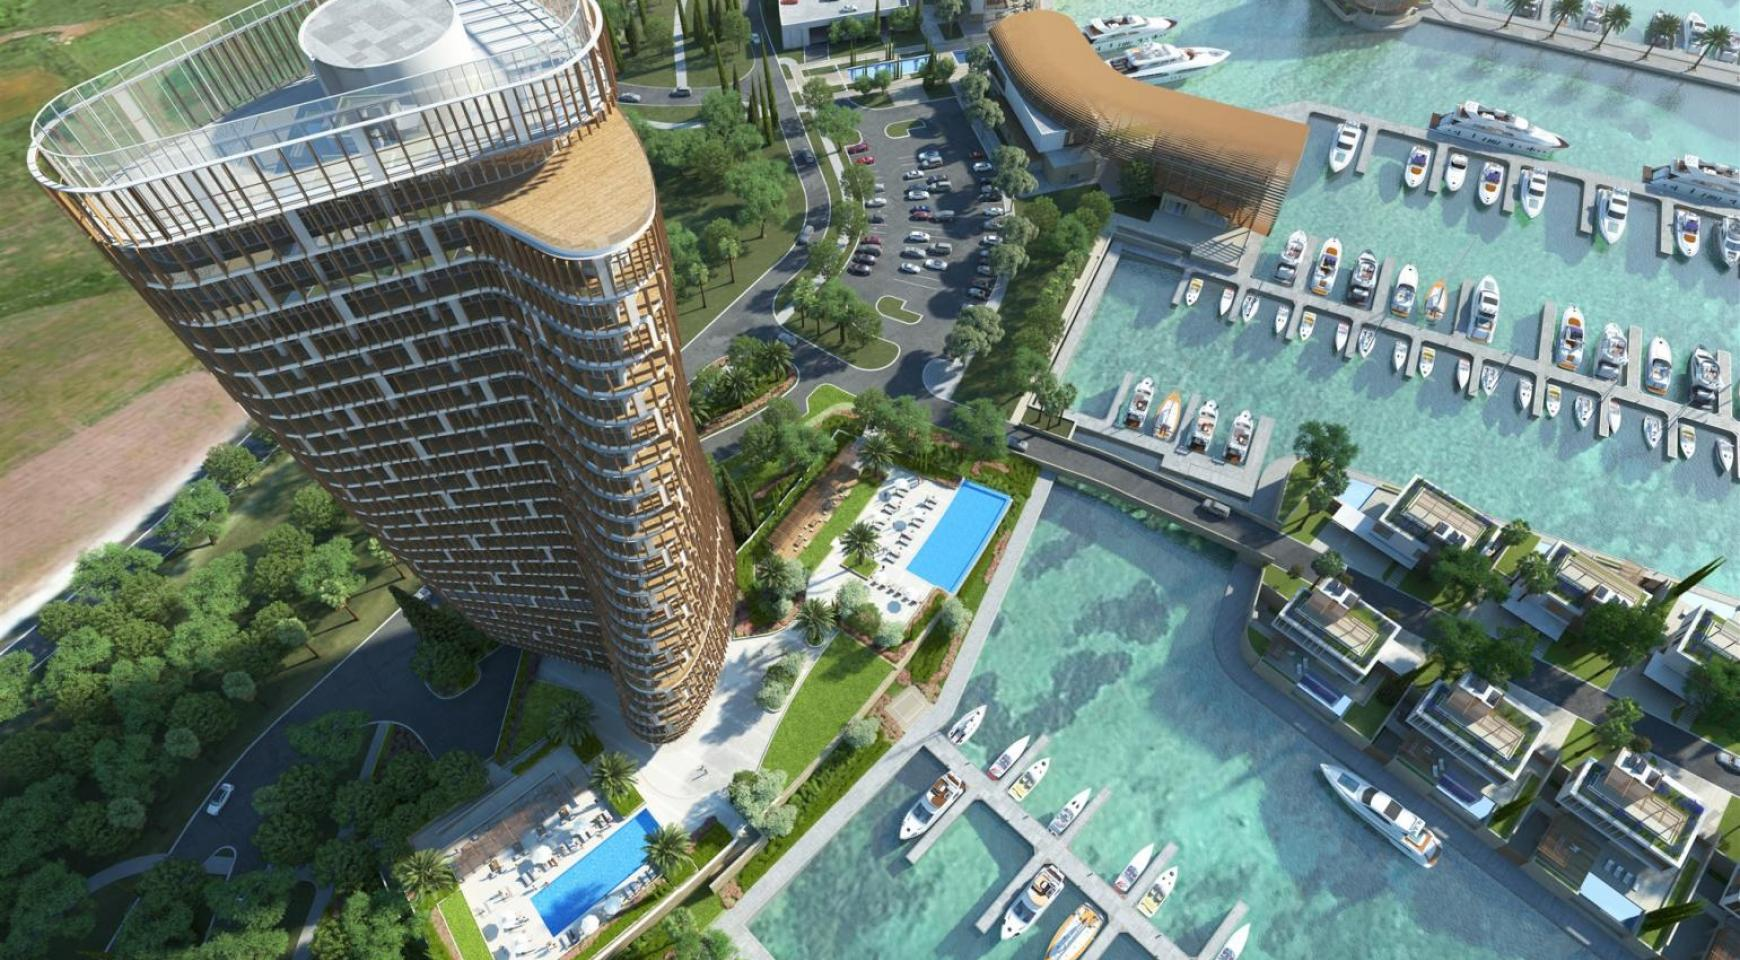 4 Bedroom Apartment in an Exclusive Project by the Sea - 5